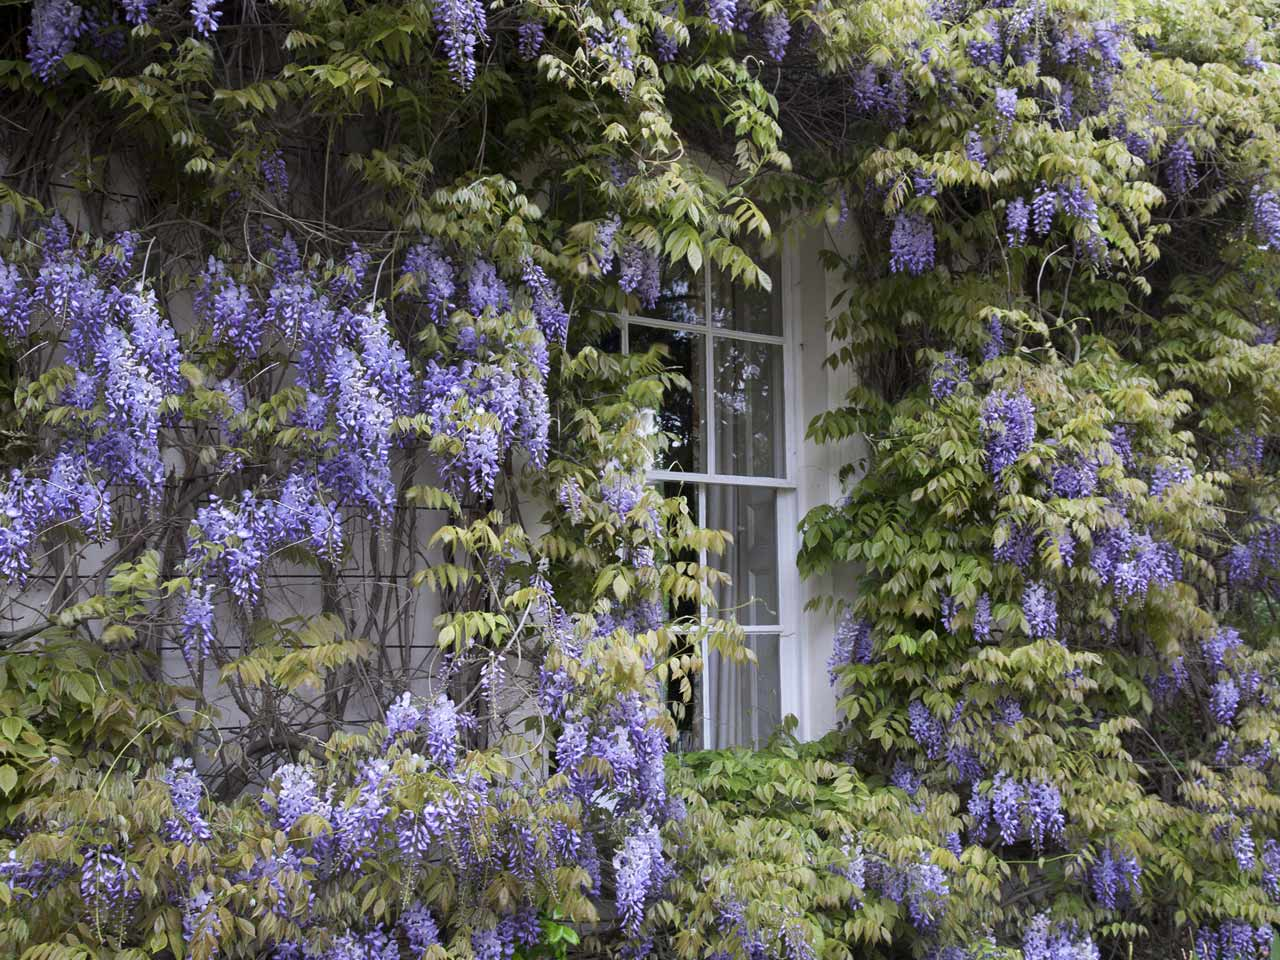 Wisteria flowers growing outside and around a house.